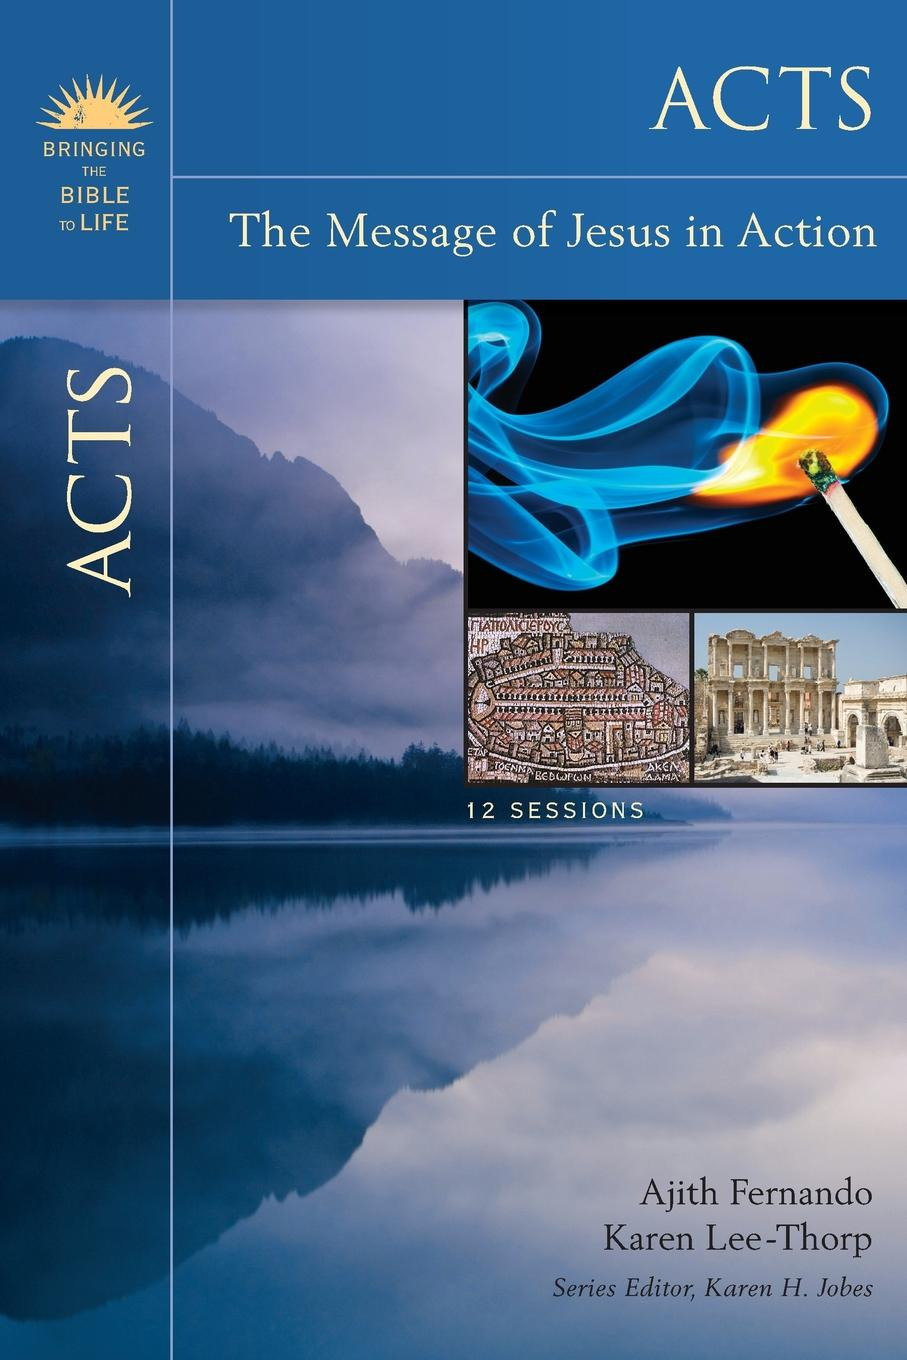 Acts. The Message of Jesus in Action